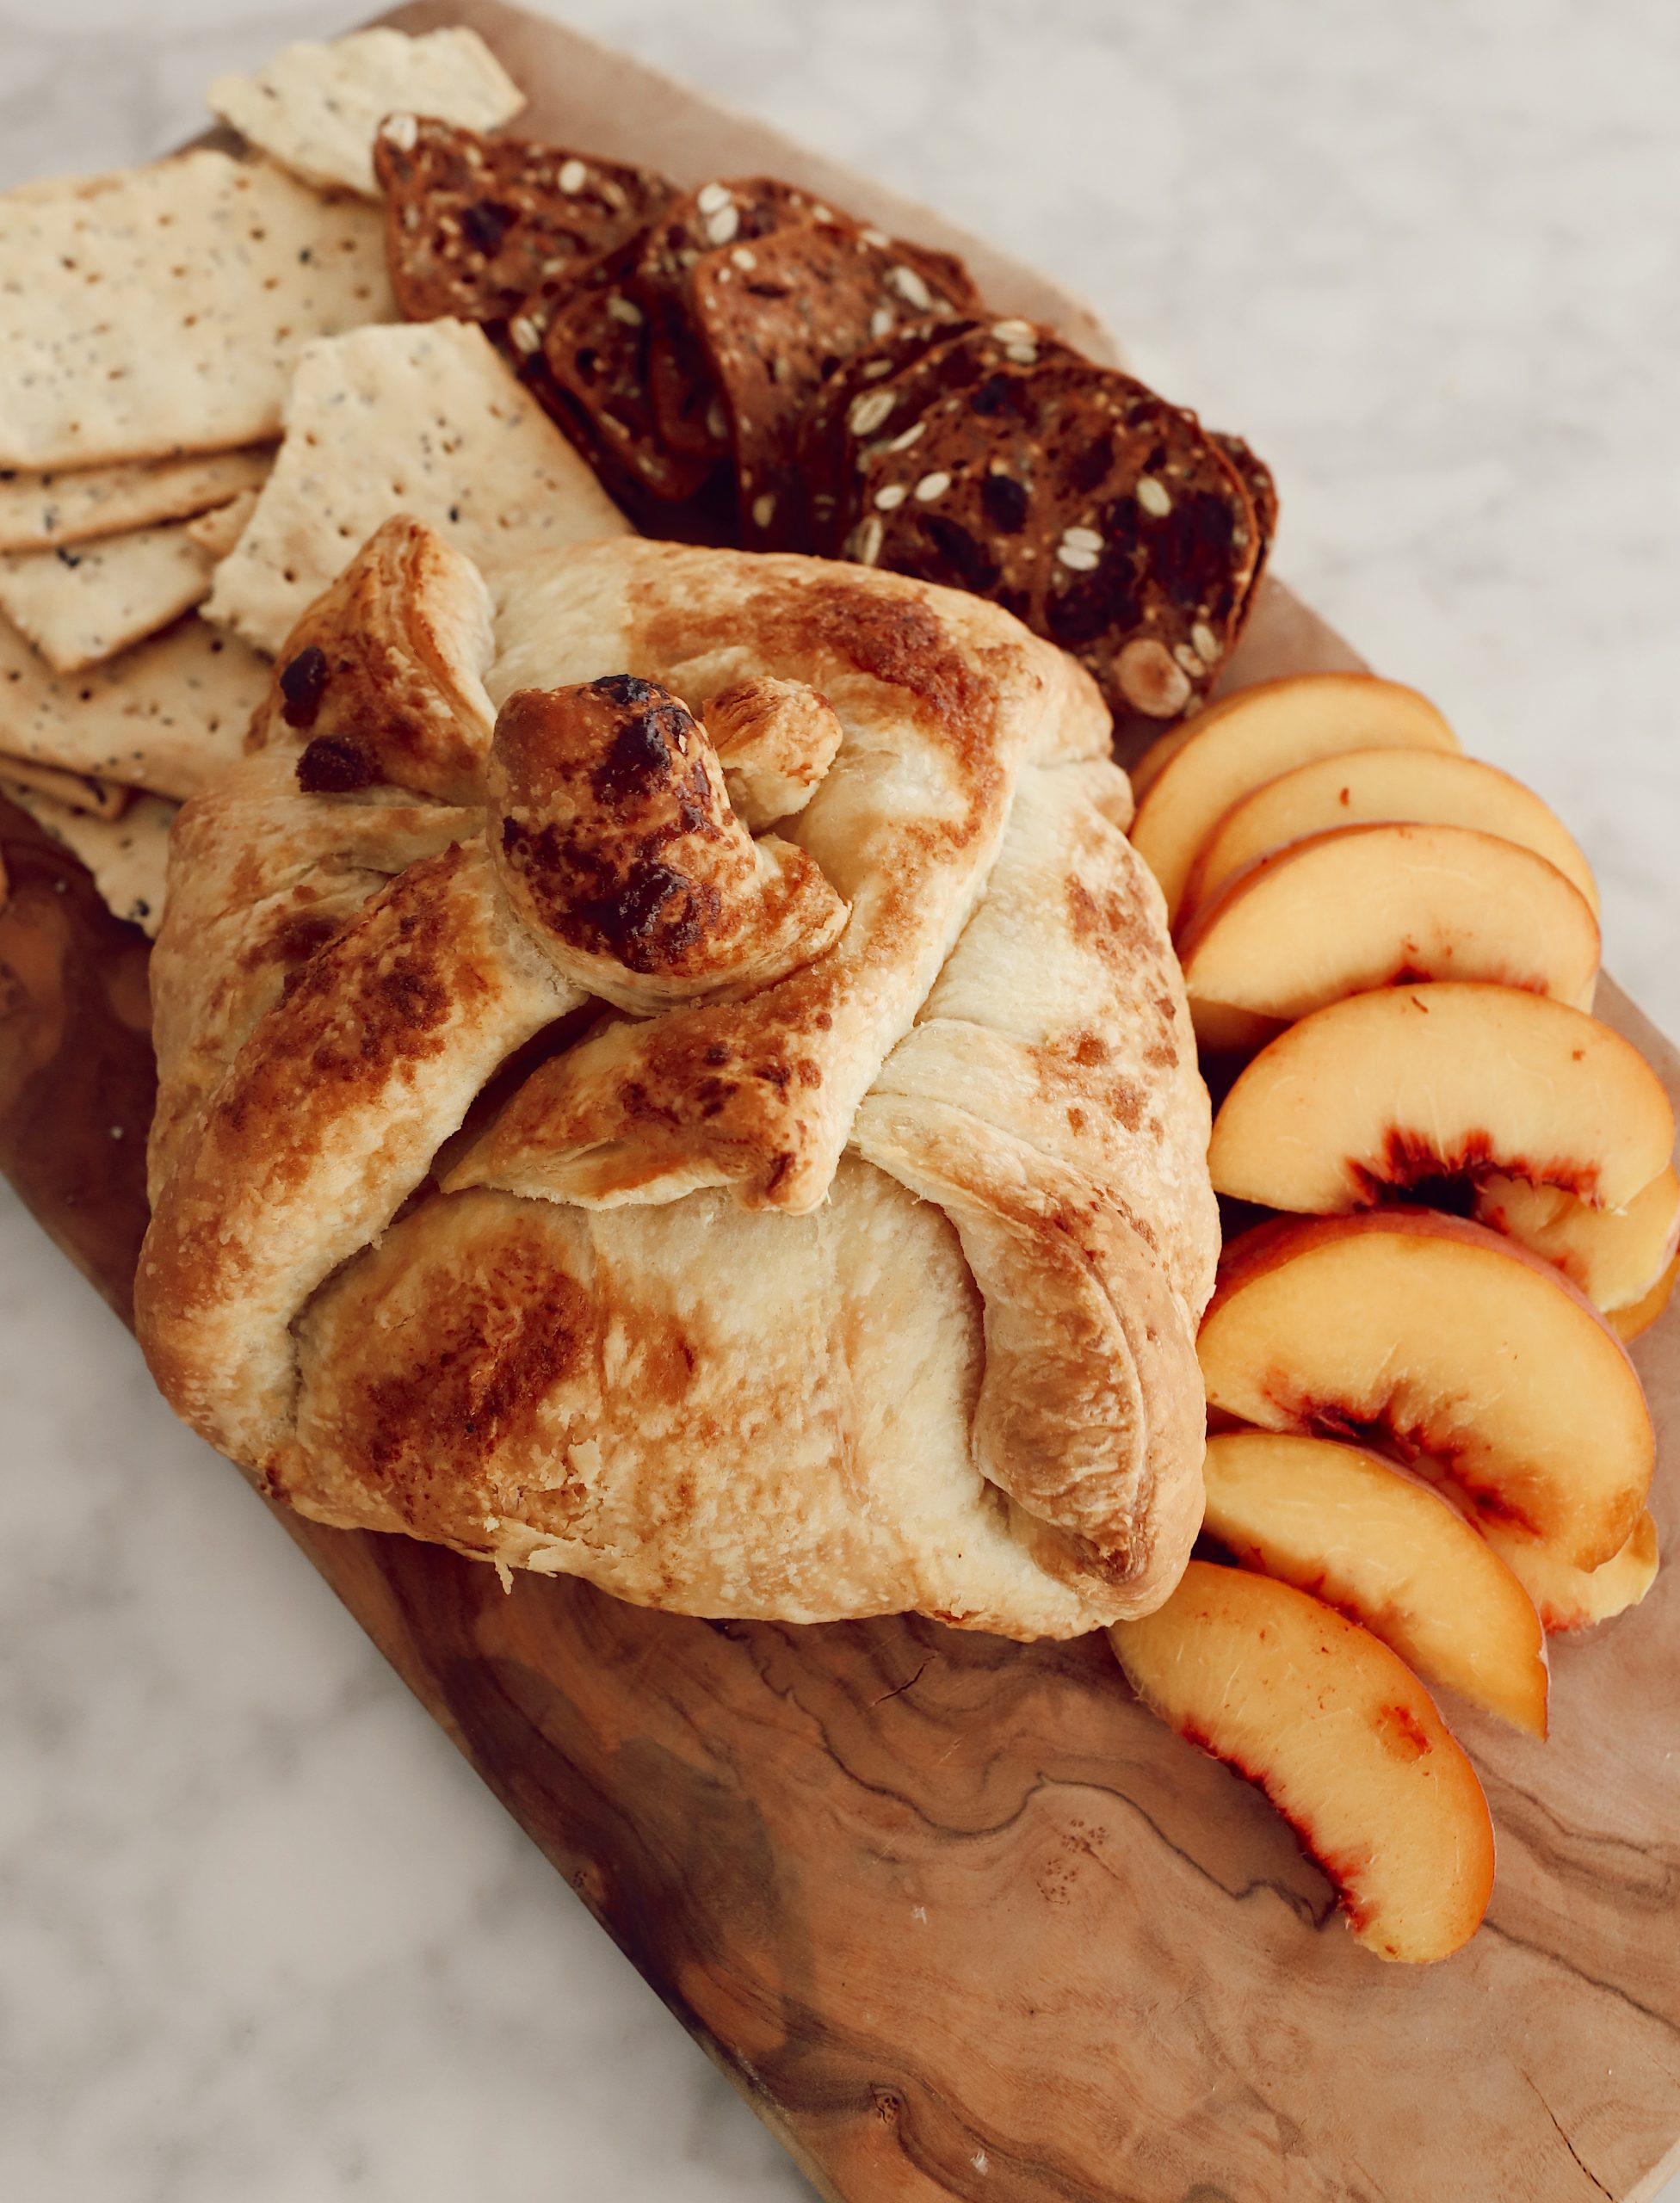 Baked Brie with Peaches